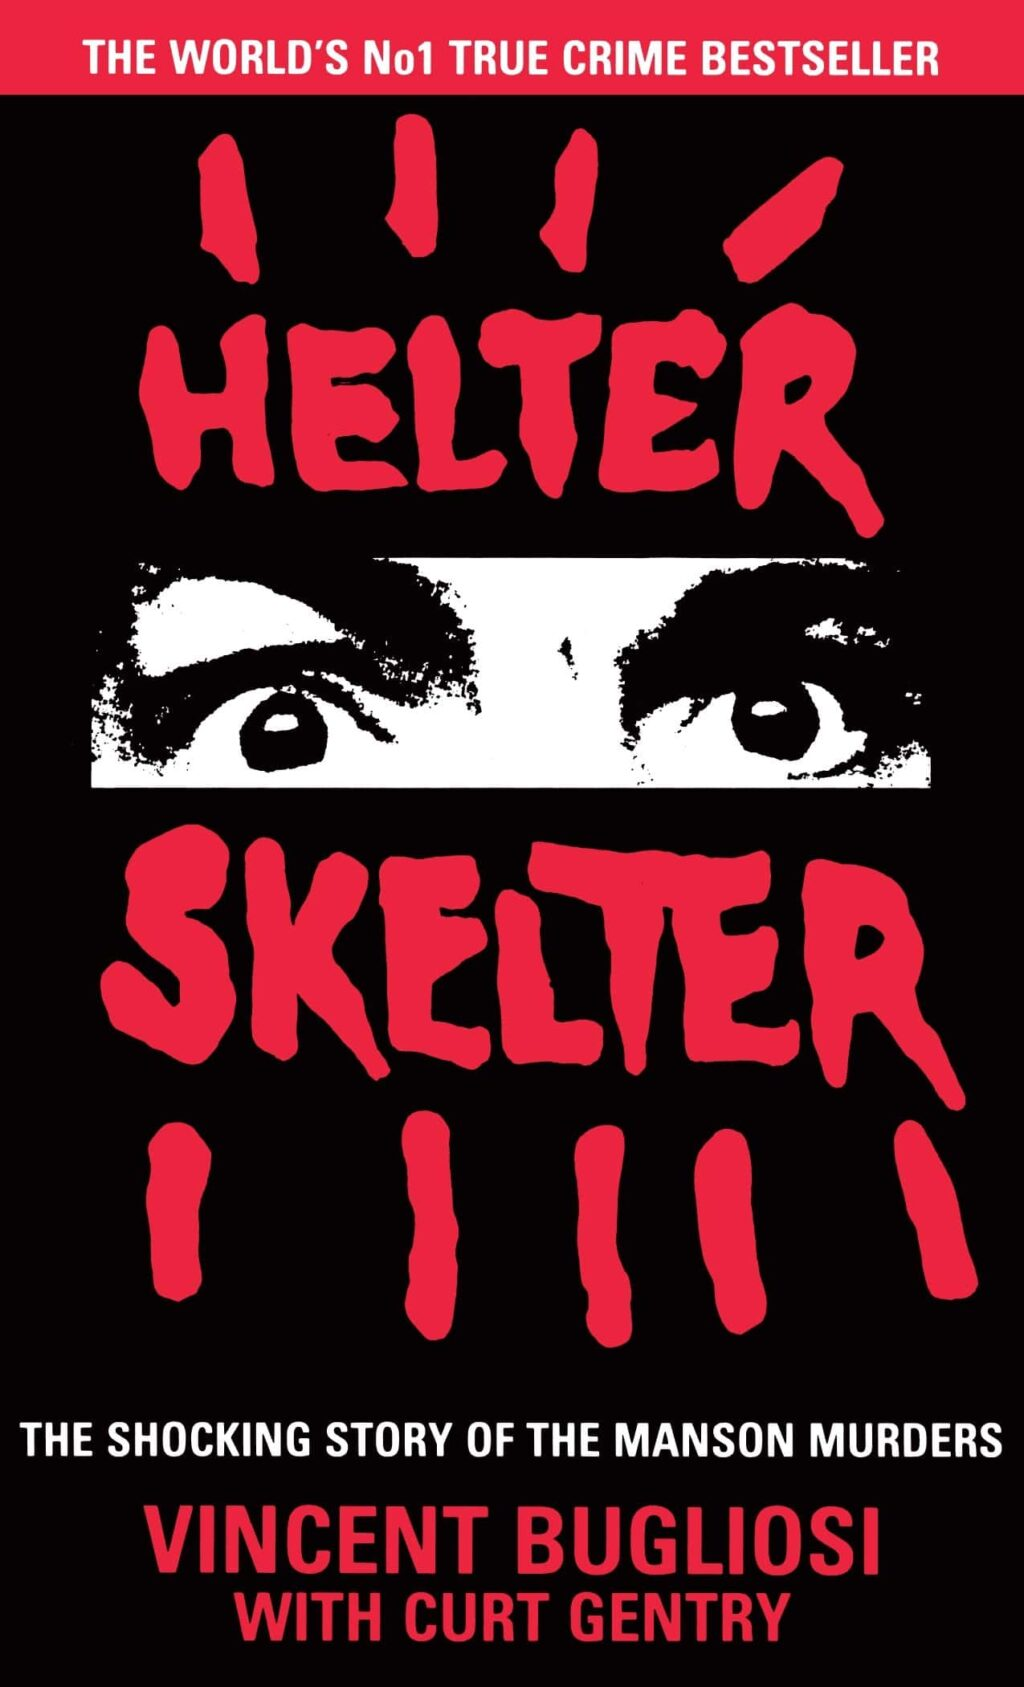 Helter Skelter 1 1024x1687 - Did You Make the Connection? 3 FROM HELL Poster Pays Homage to the Most Popular True Crime Novel Ever